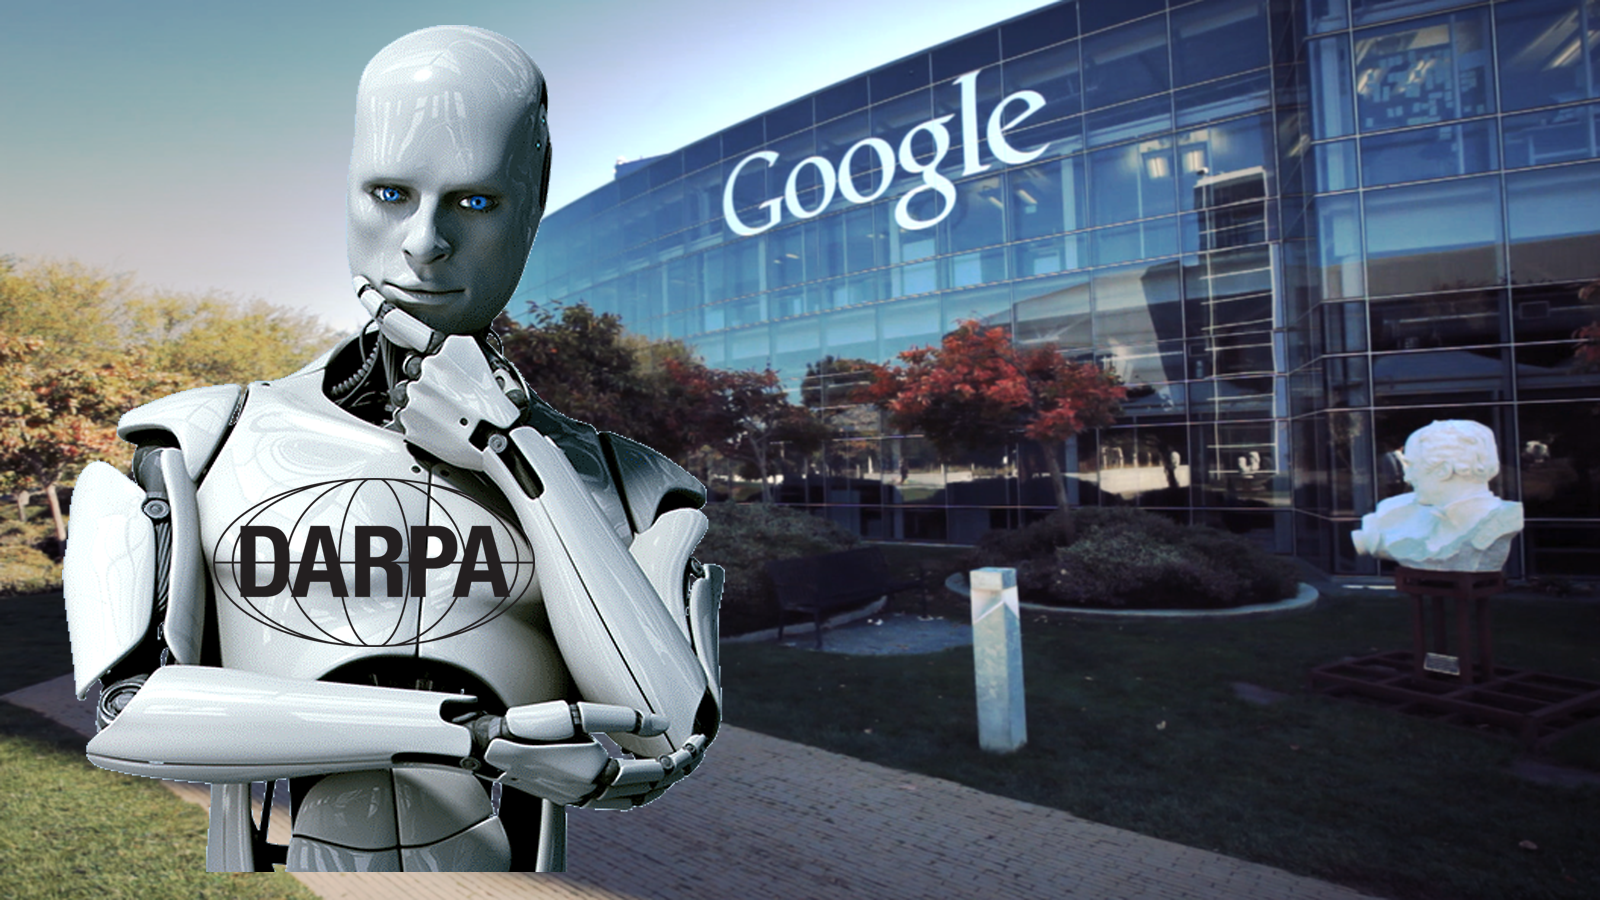 Google's Artificial Intelligence Learns 'Highly Aggressive' Behavior, Concept of Betrayal